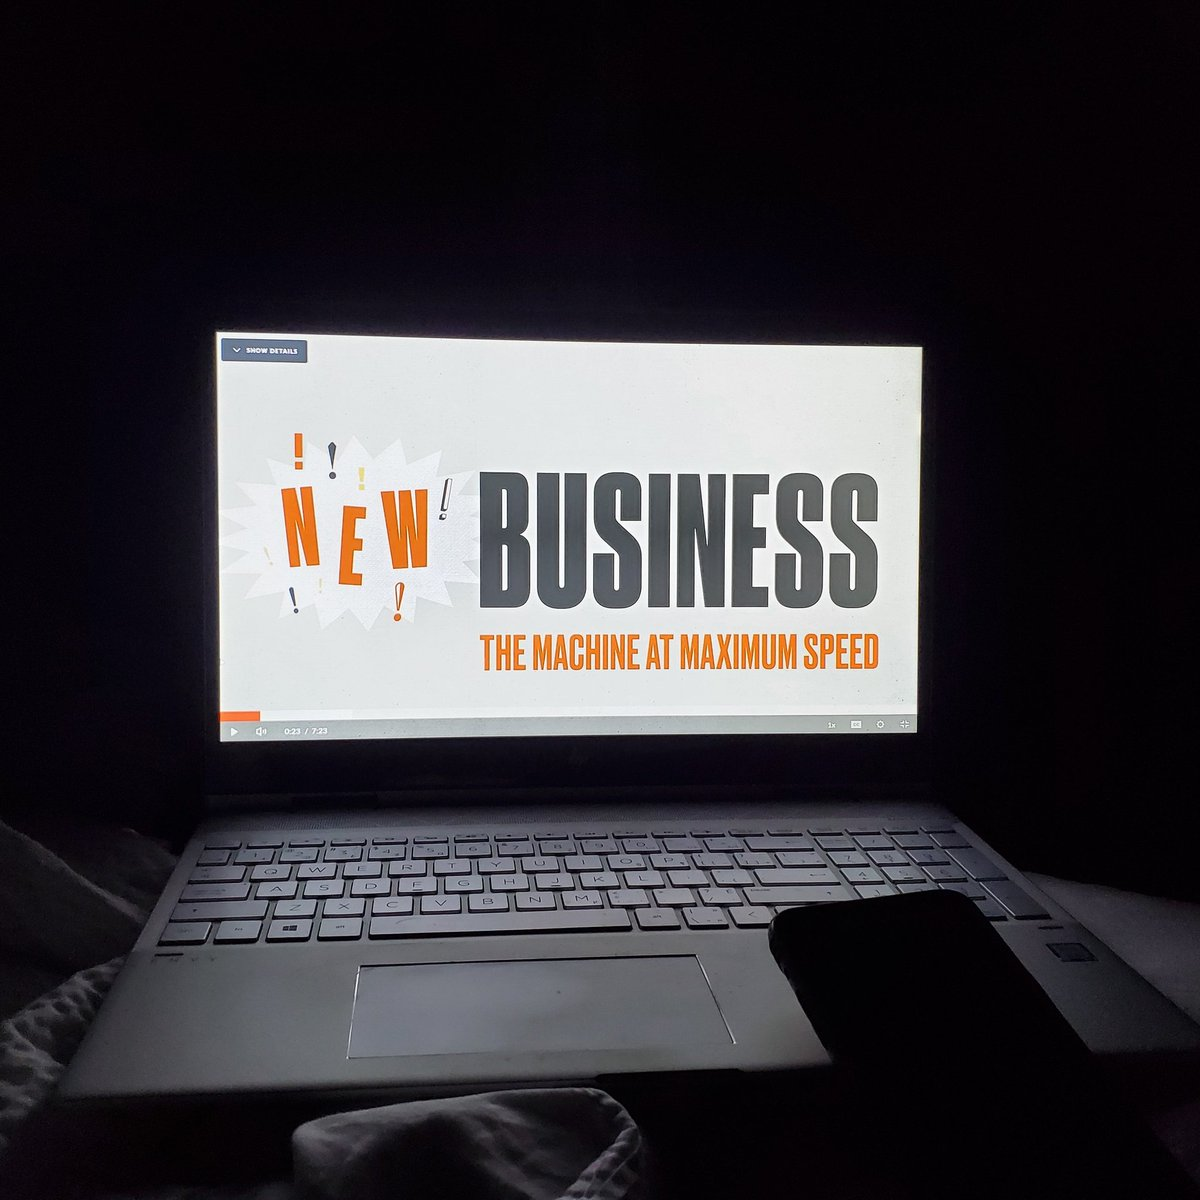 Finally settling down at the hotel after about 25 hours with on the go. Time now for a Master Class on new business from Jeff Goodby & Rich Silverstein. Good night everyone! ✌👍 #businesstrip #nevernotworking #buildingsomethingthatmatters #dezansocialmedia